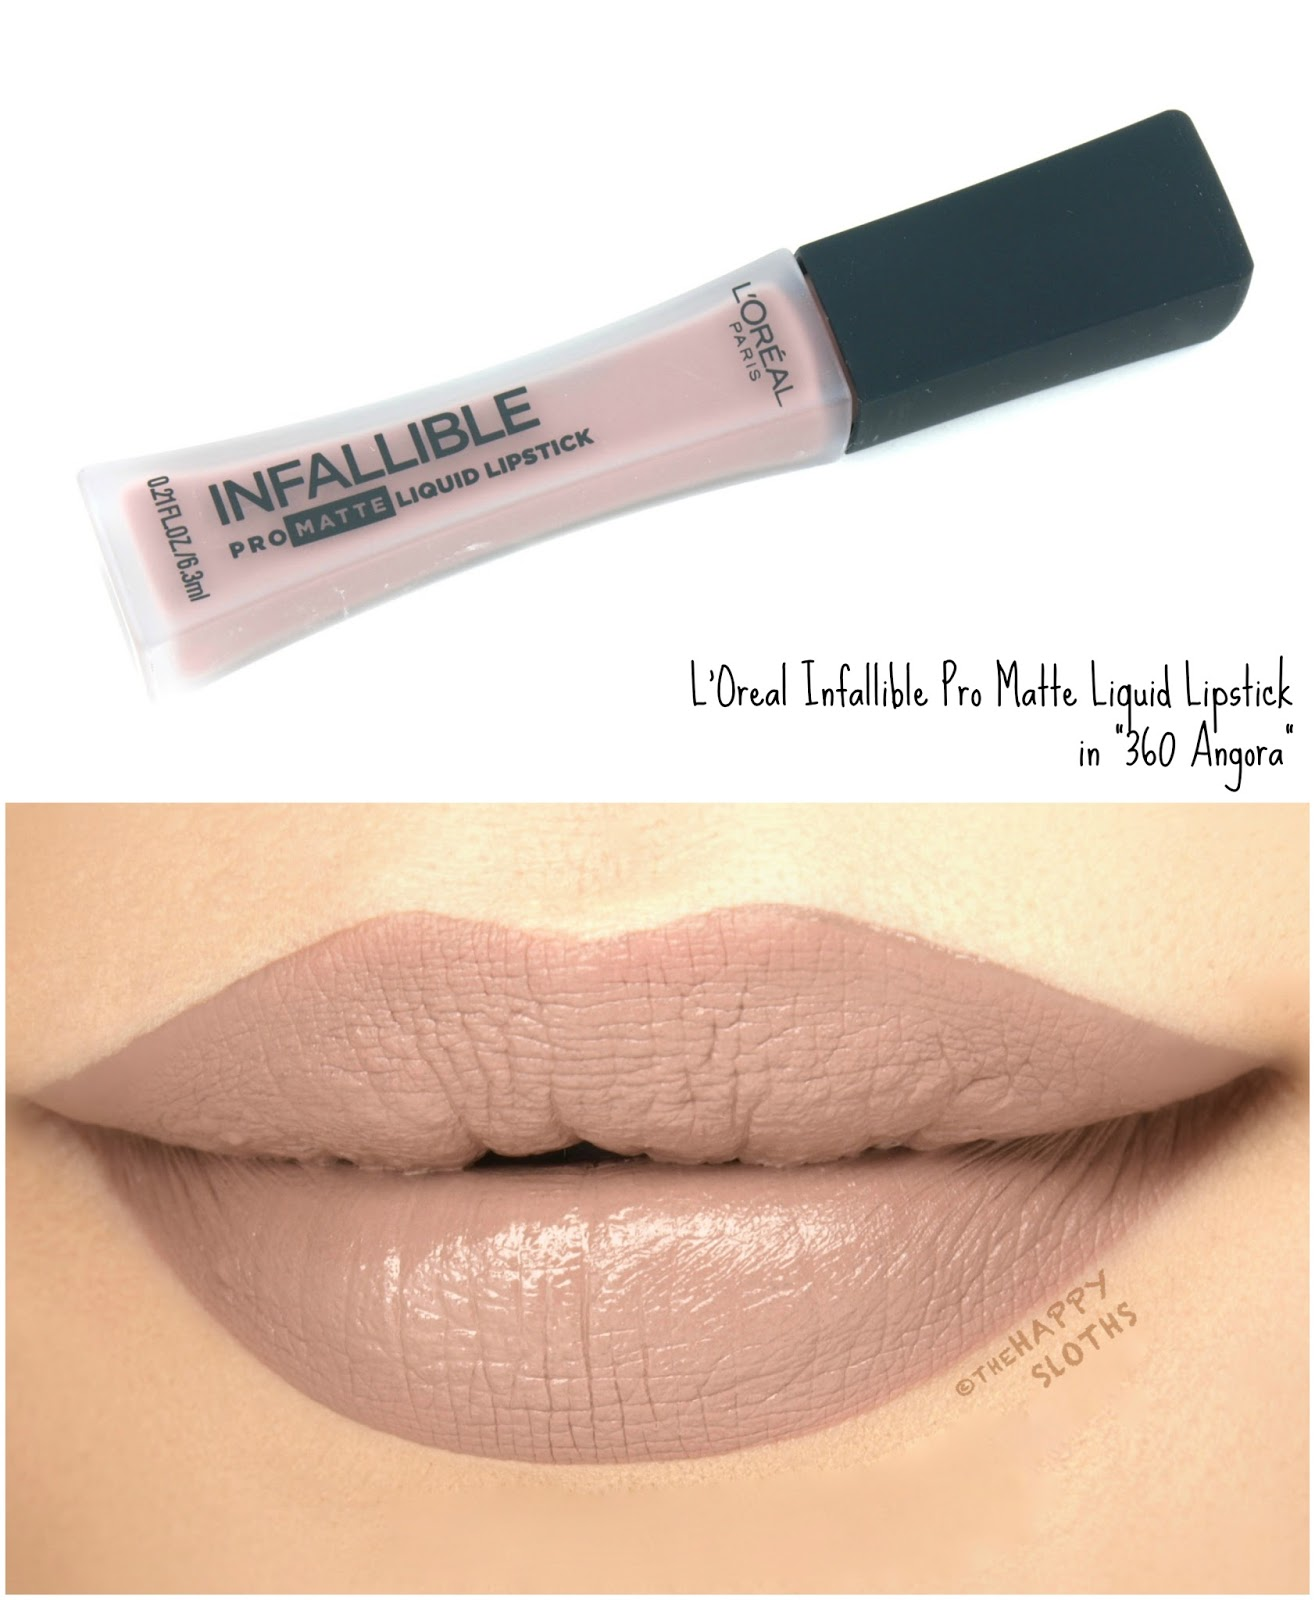 "L'Oreal Infallible Pro Matte Liquid Lipsticks ""360 Angora"": Review and Swatches"